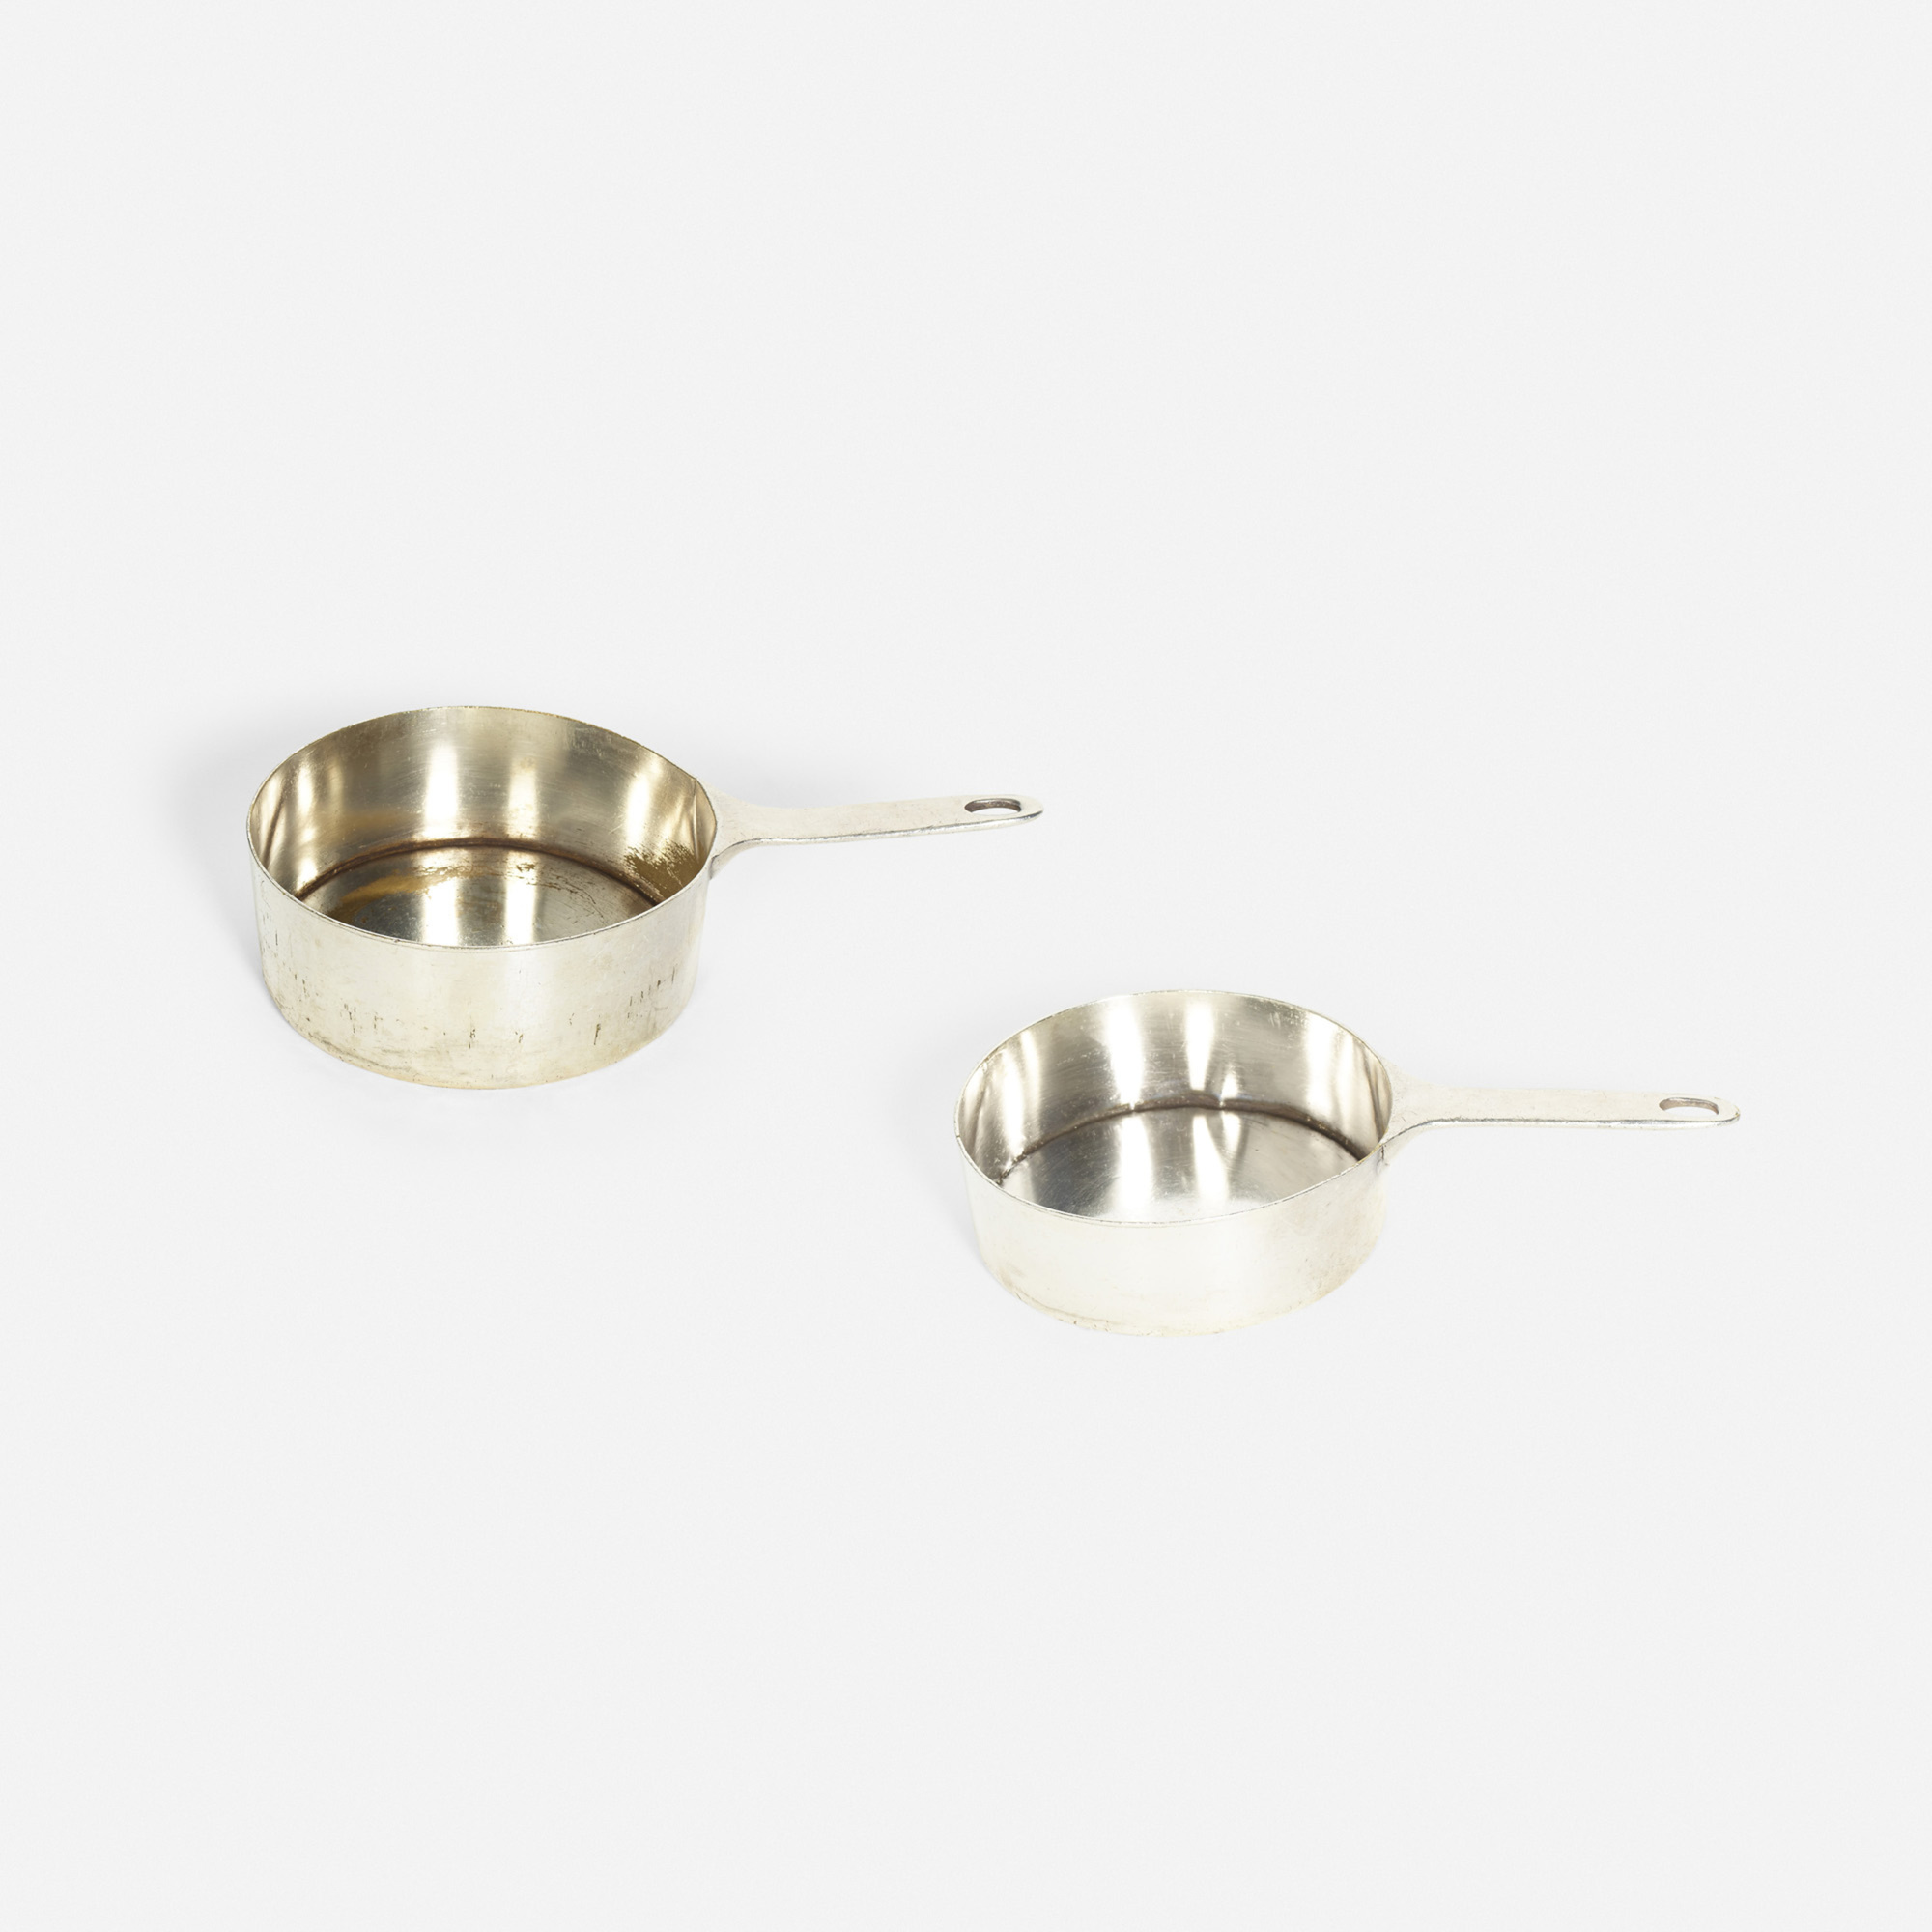 870: Garth and Ada Louise Huxtable / sauce pots from the kitchen of The Four Seasons, set of two (1 of 1)